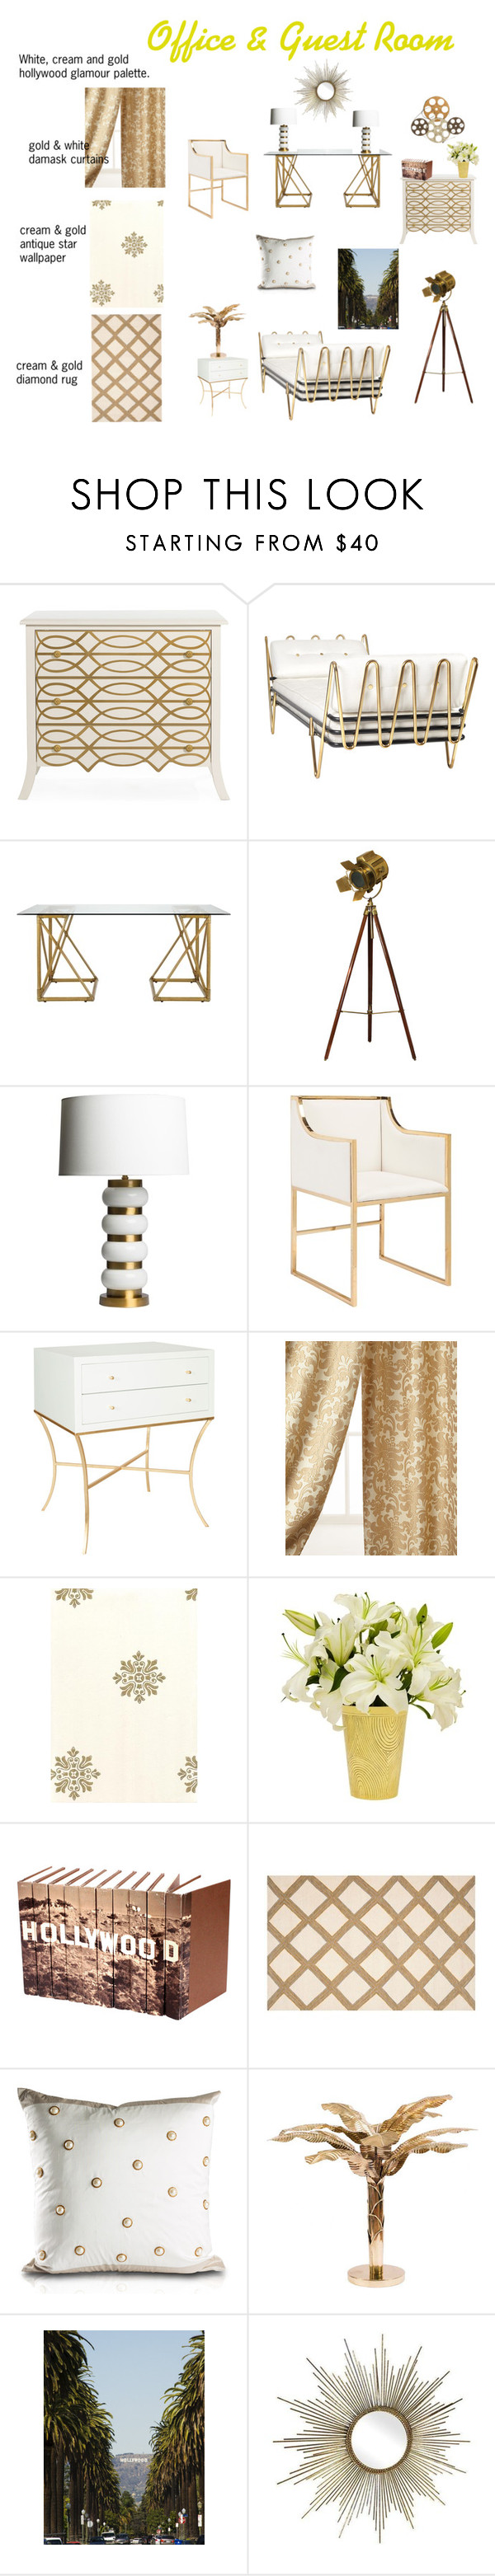 """""""Office & Guest Room"""" by canoe-communicationsblog ❤ liked on Polyvore featuring interior, interiors, interior design, home, home decor, interior decorating, Jonathan Adler, Selamat, Worlds Away and Austin Horn Collection"""